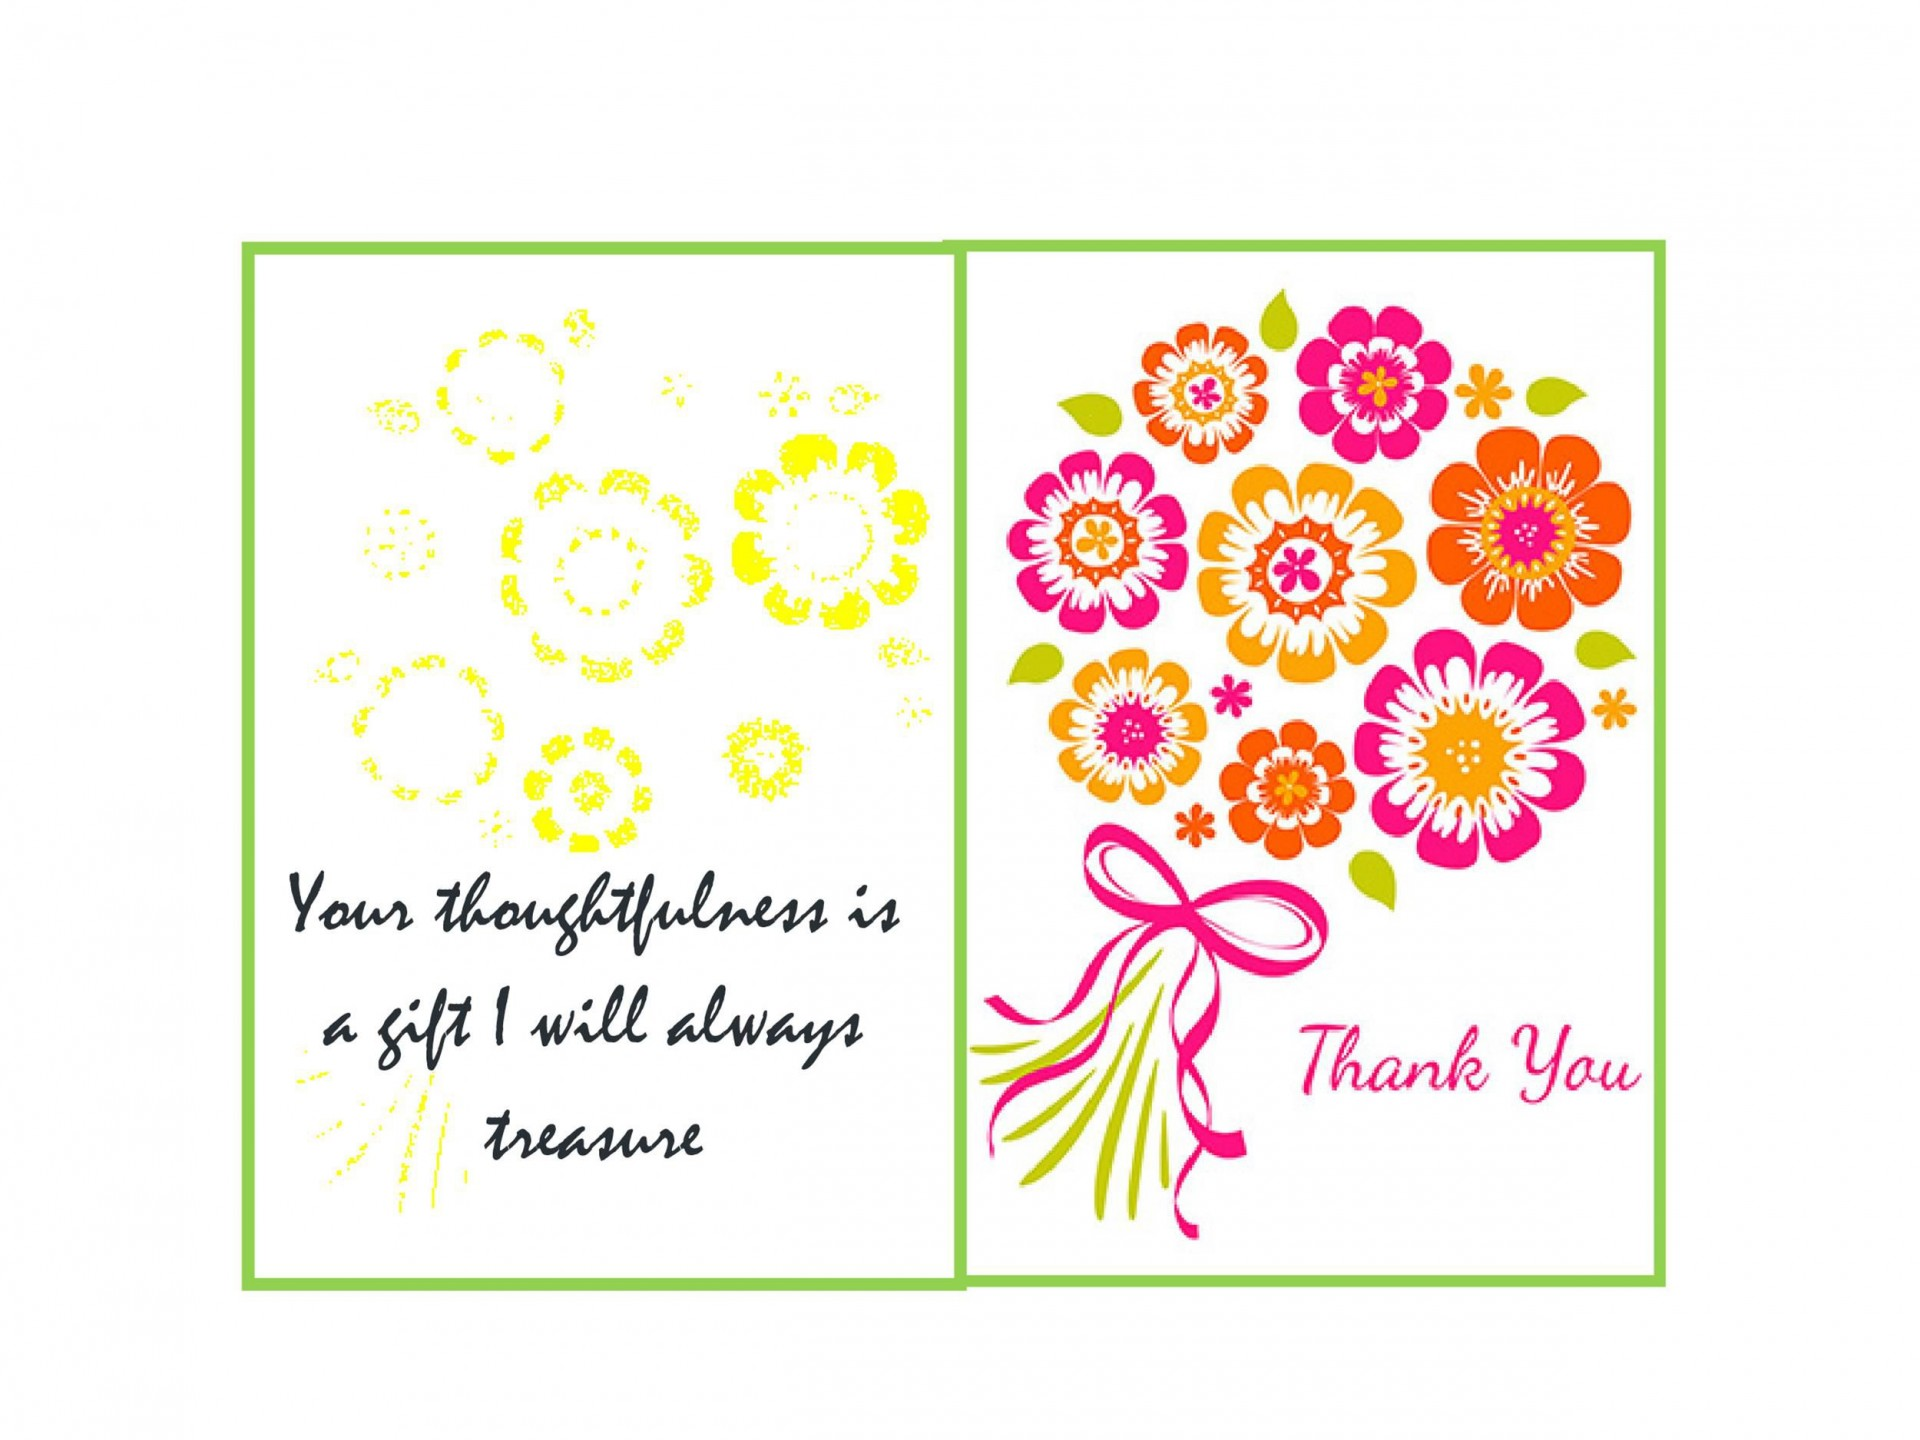 006 Stirring Free Thank You Card Template Image  Google Doc For Funeral Microsoft Word1920